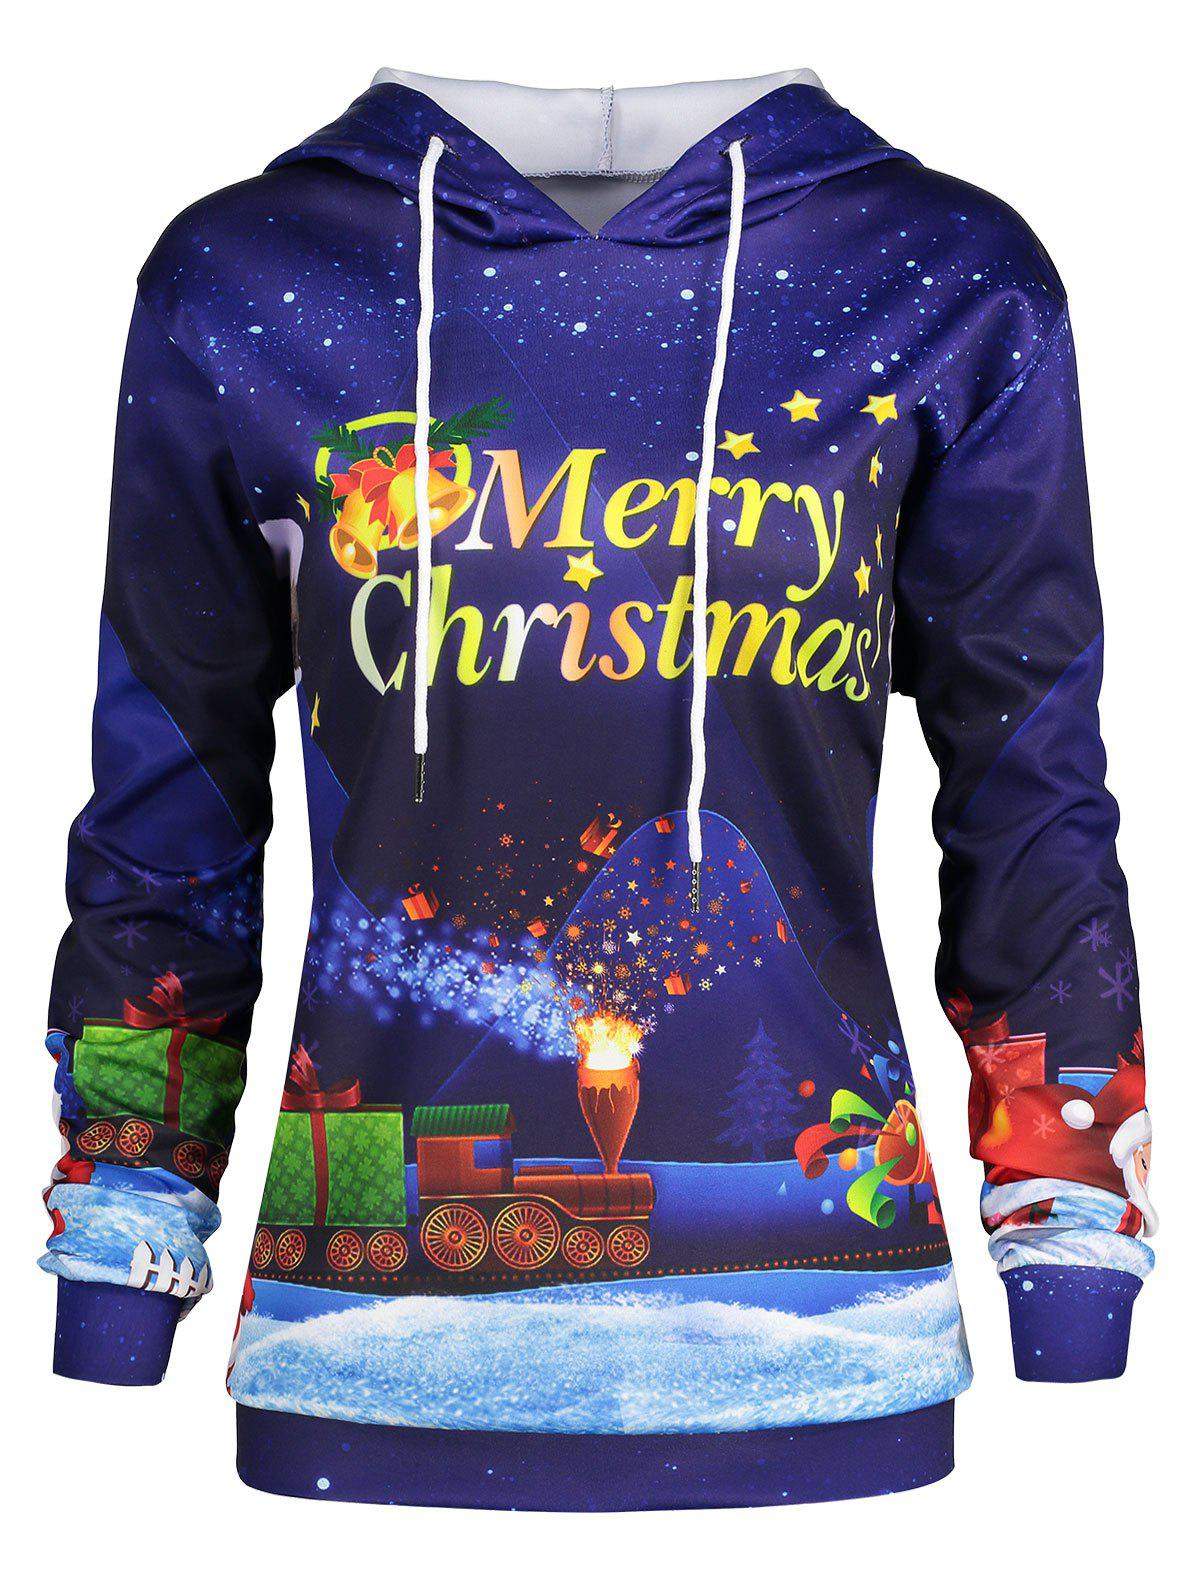 Plus Size Sky Father Christmas Graphic HoodieWOMEN<br><br>Size: 3XL; Color: BLUE; Material: Cotton Blend,Polyester; Shirt Length: Long; Sleeve Length: Full; Style: Fashion; Pattern Style: Character,Letter,Star; Season: Fall,Winter; Weight: 0.3900kg; Package Contents: 1 x Hoodie;